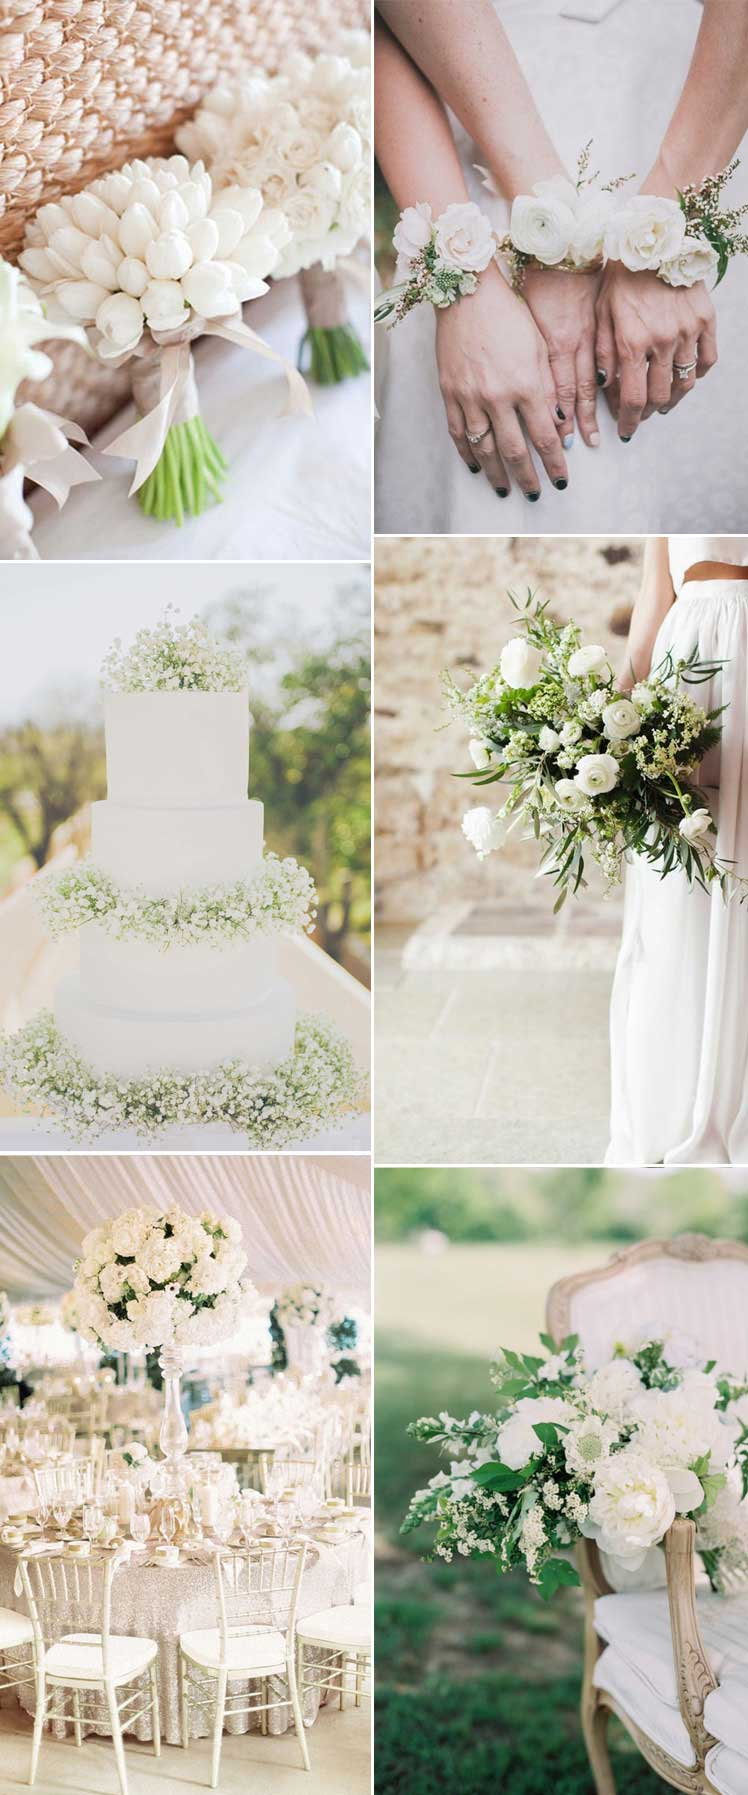 choose all white flowers for a spring wedding